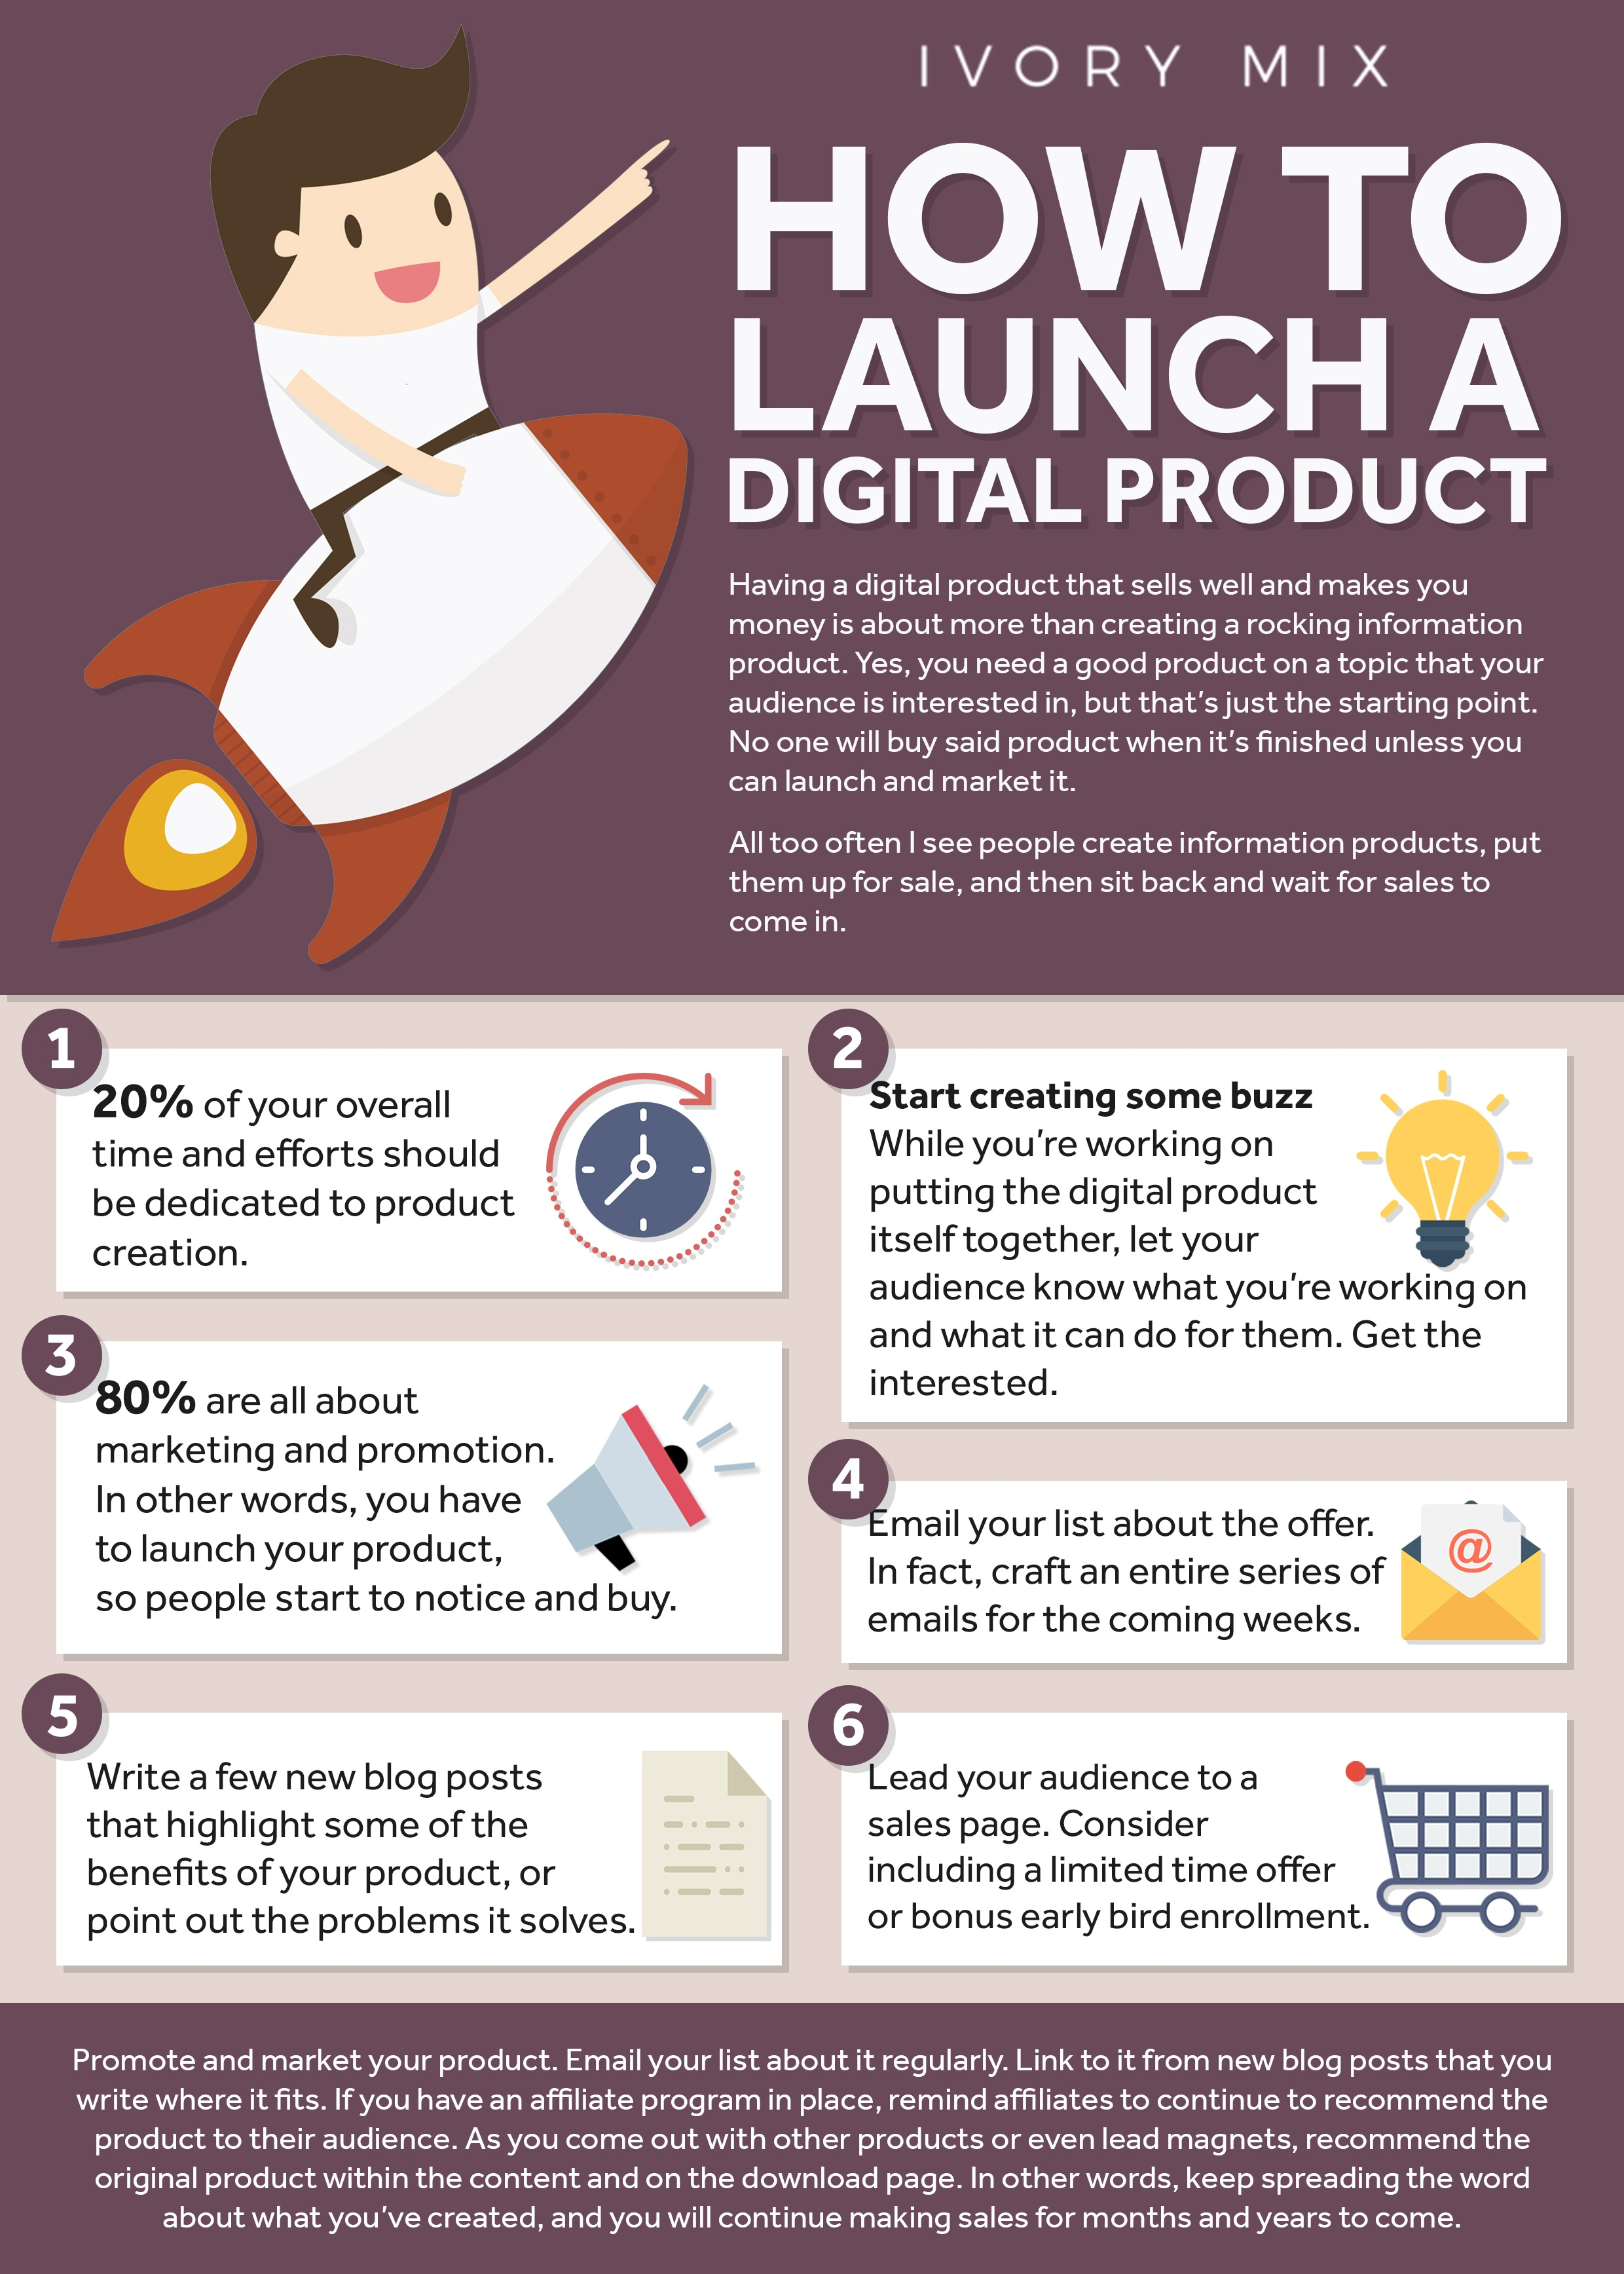 How-to-launch-a-digital-product